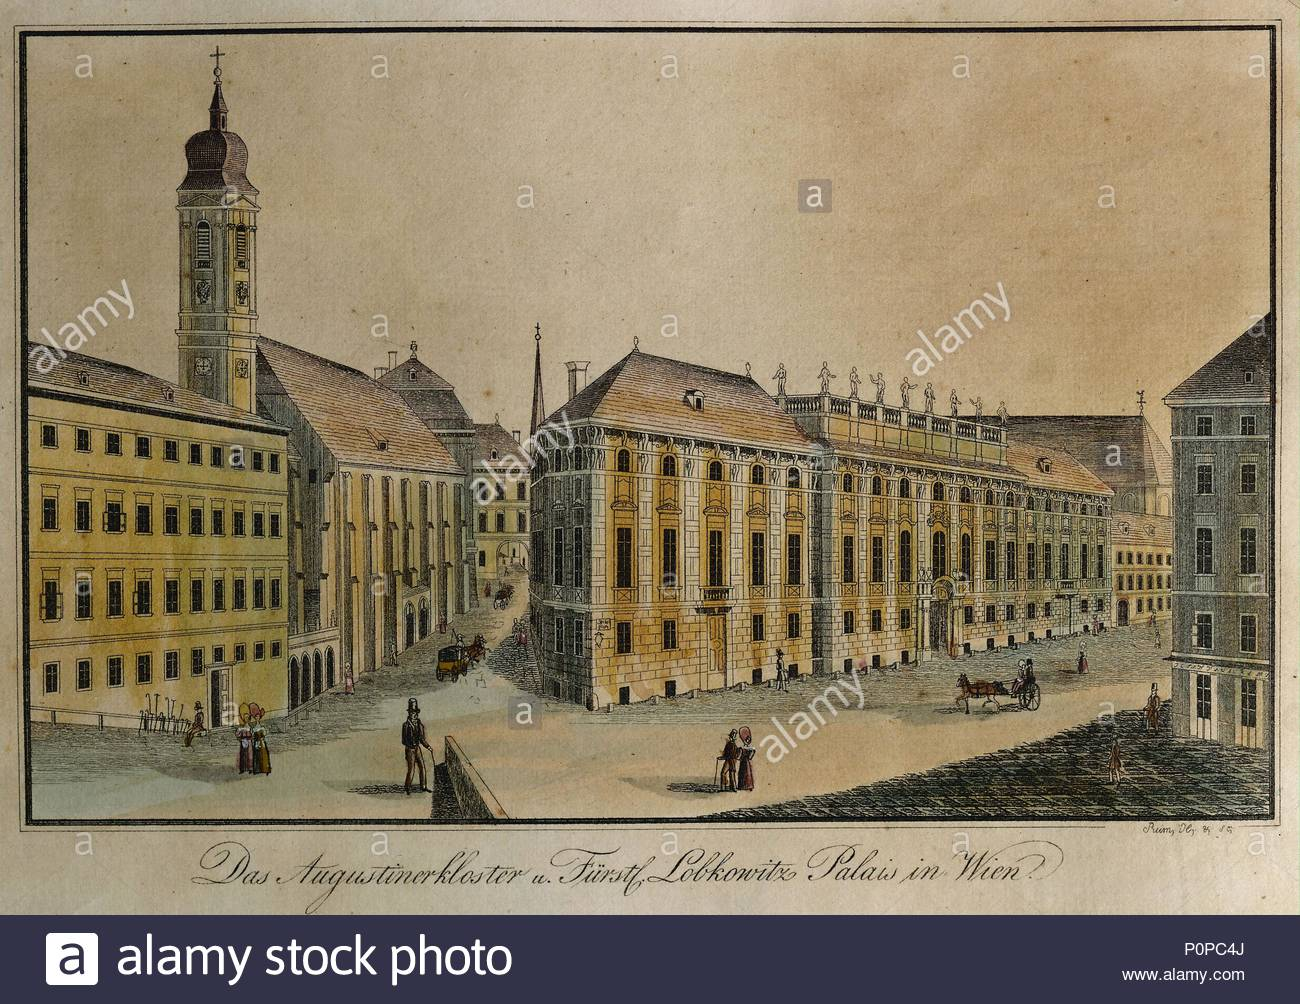 lobkowitz palace in vienna site of the first performance of ludwig